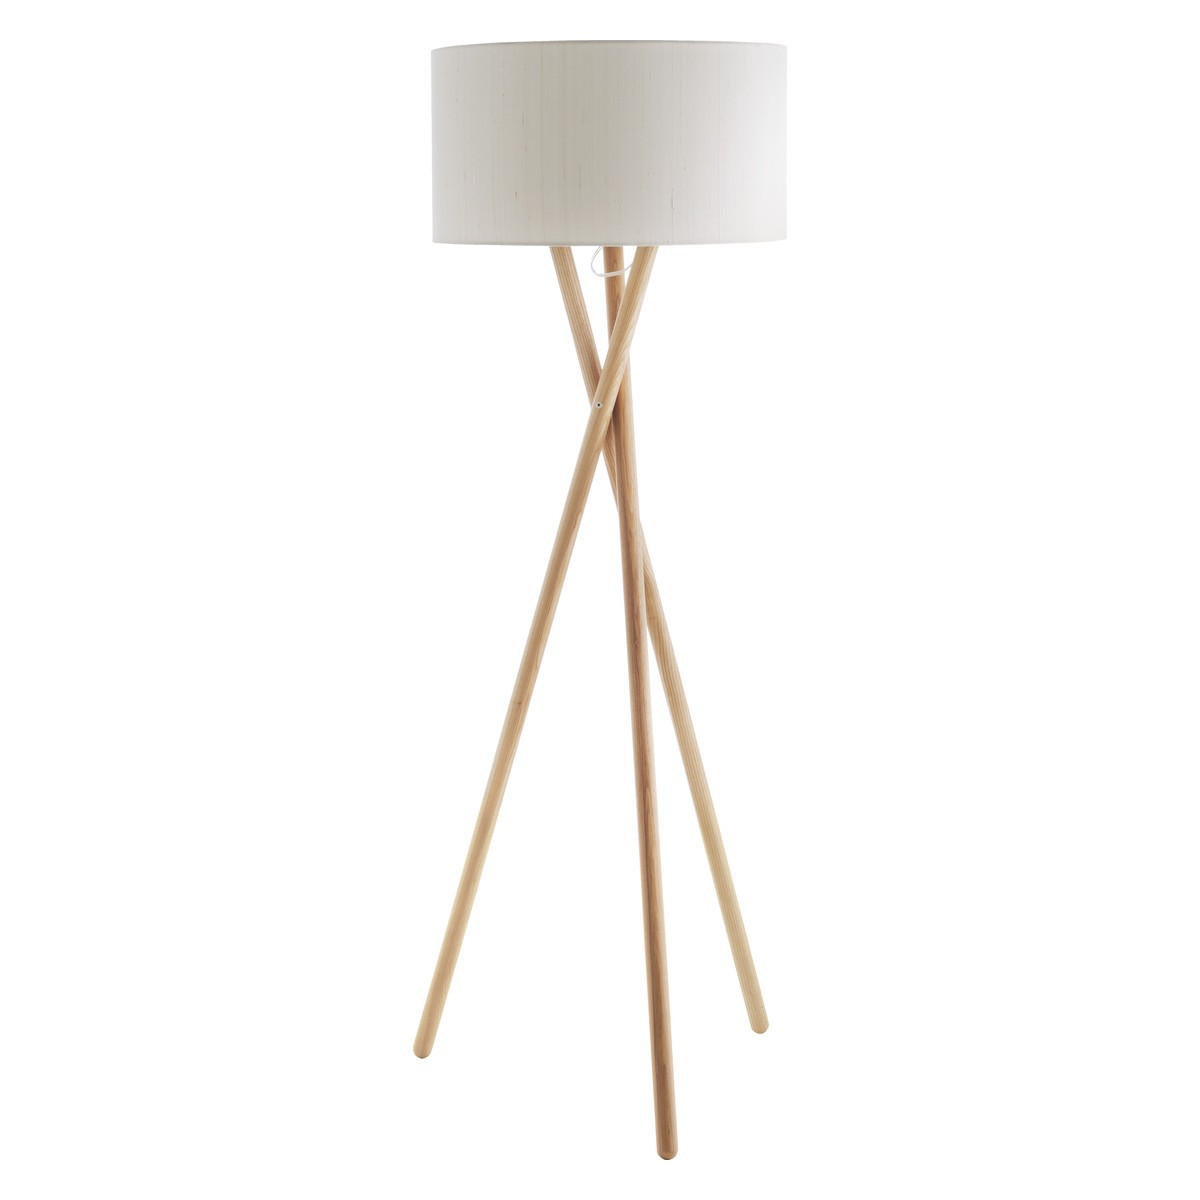 10 benefits of wood floor lamps warisan lighting 10 benefits of wood floor lamps geotapseo Gallery